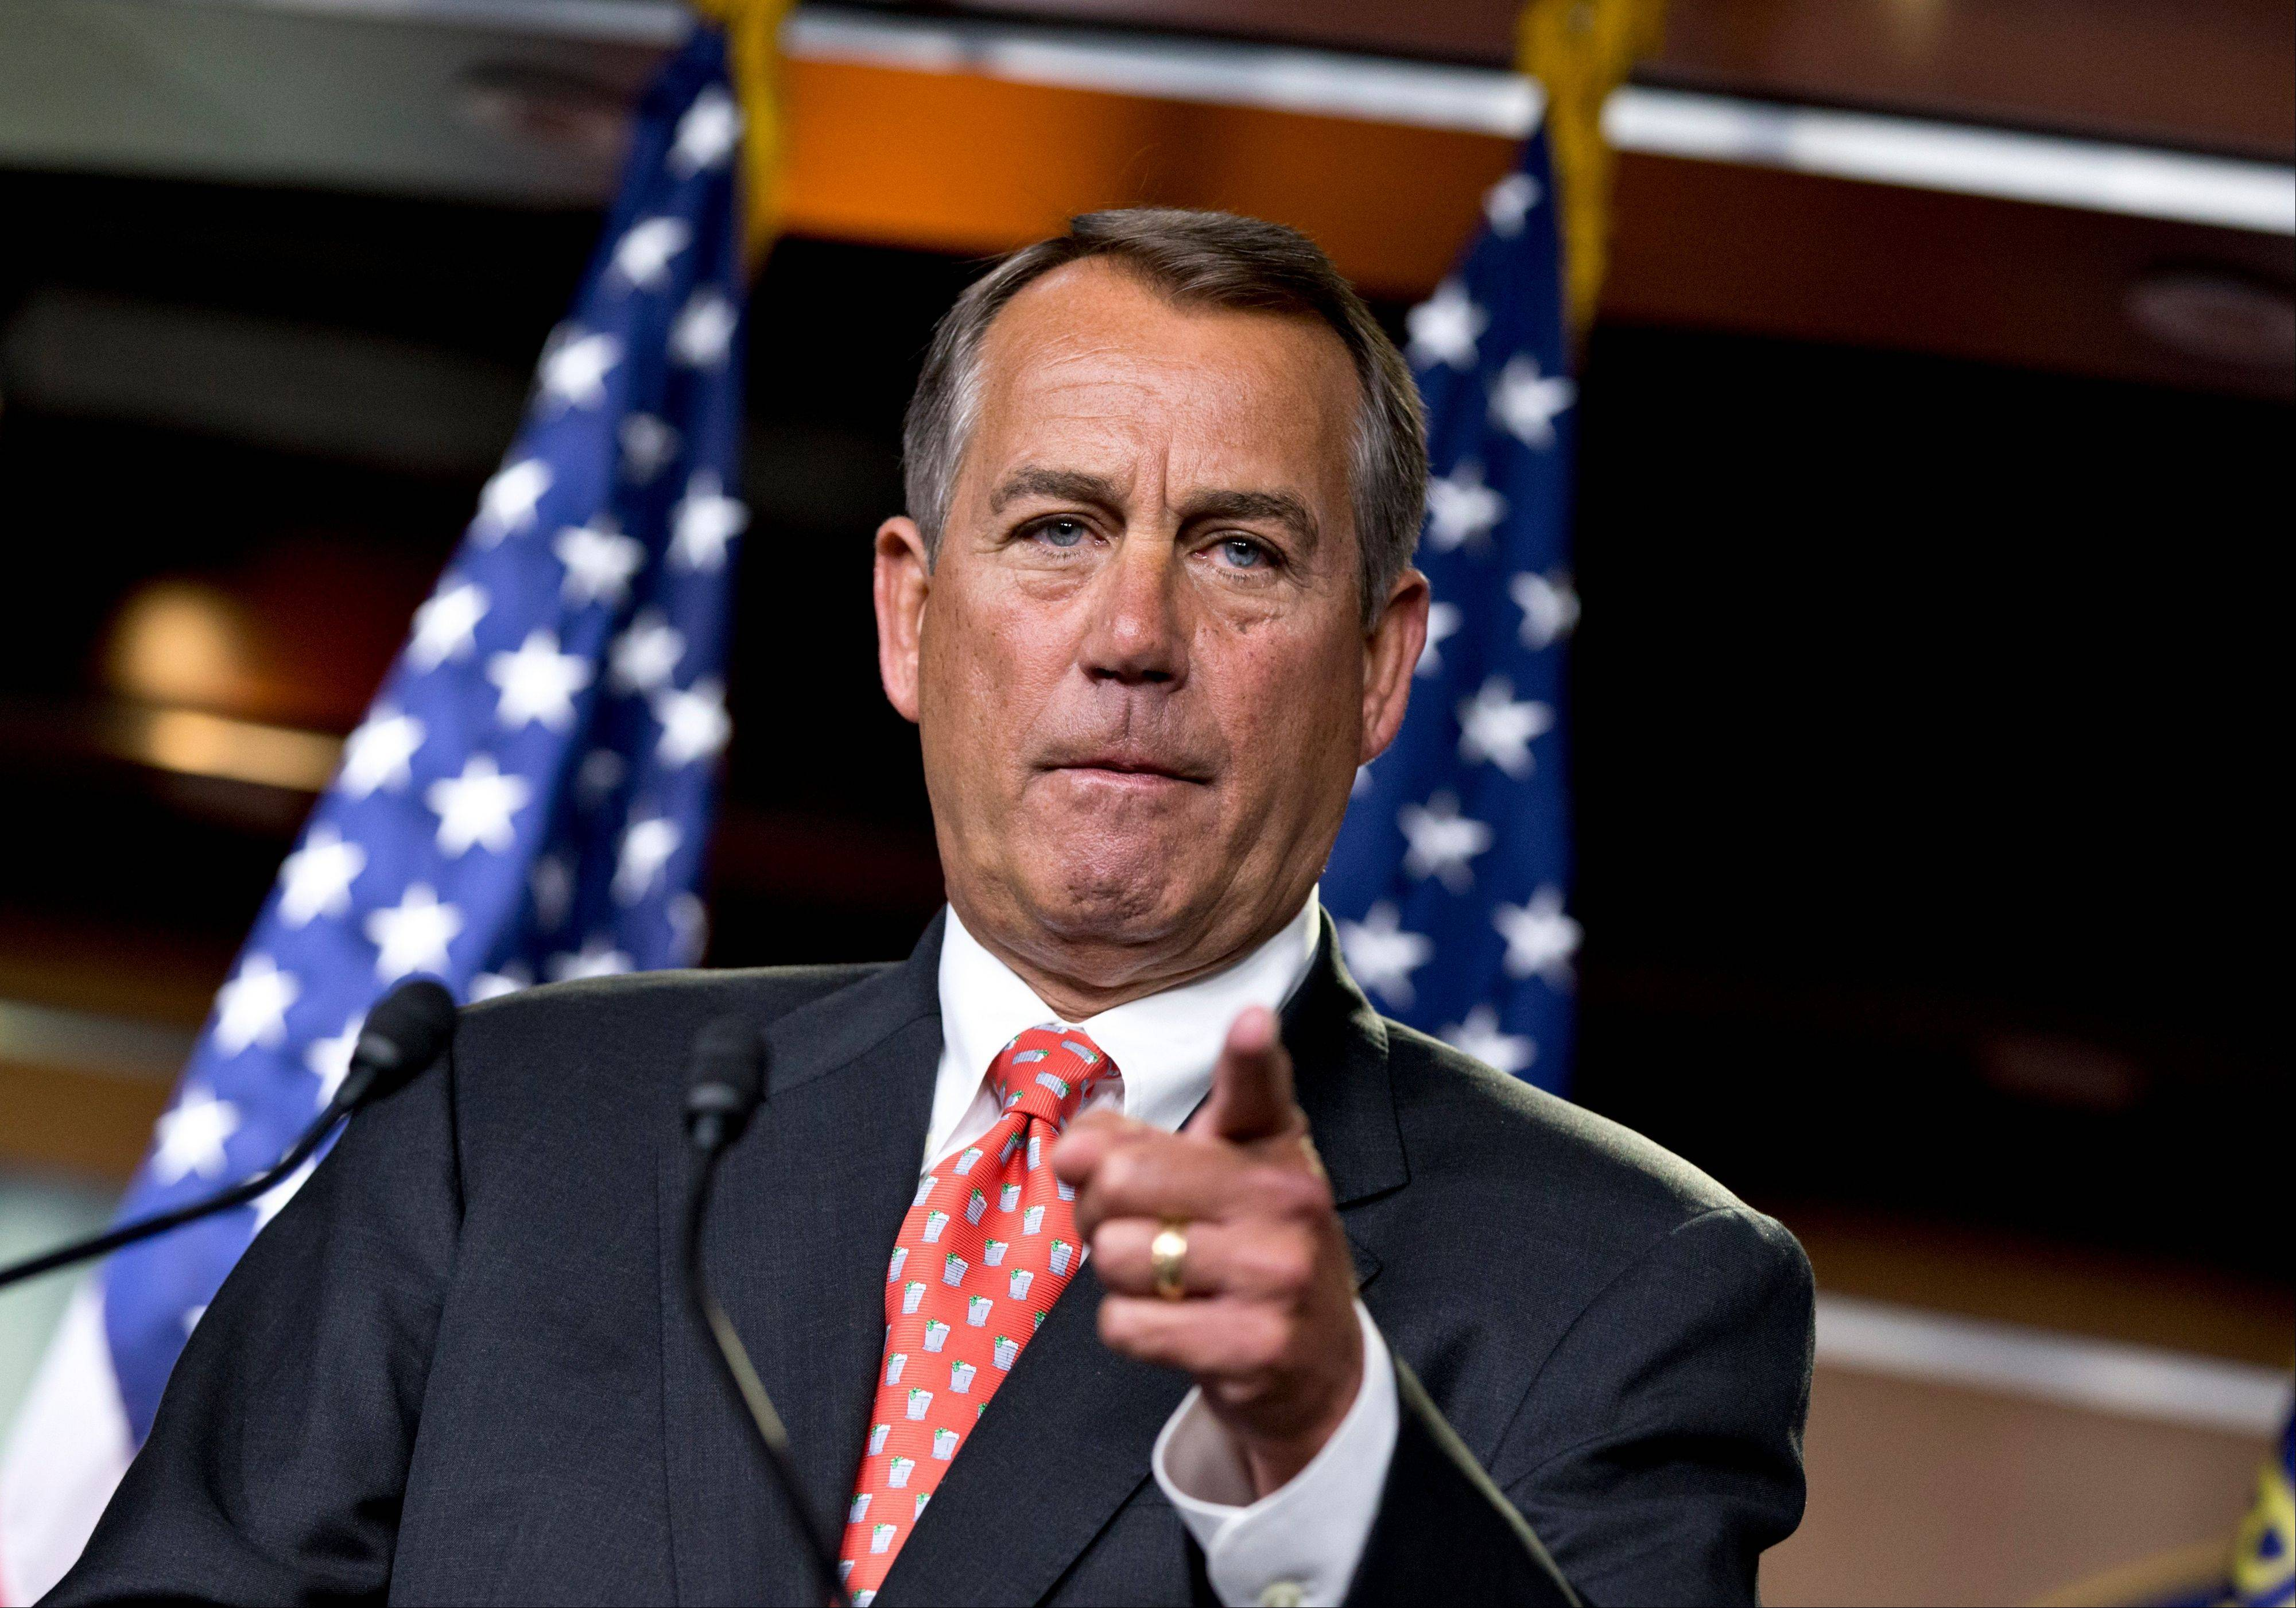 House Speaker John Boehner speaks to reporters after private talks with Treasury Secretary Timothy Geithner on the fiscal cliff negotiations. Boehner said no substantive progress has been made between the White House and the House in the past two weeks.